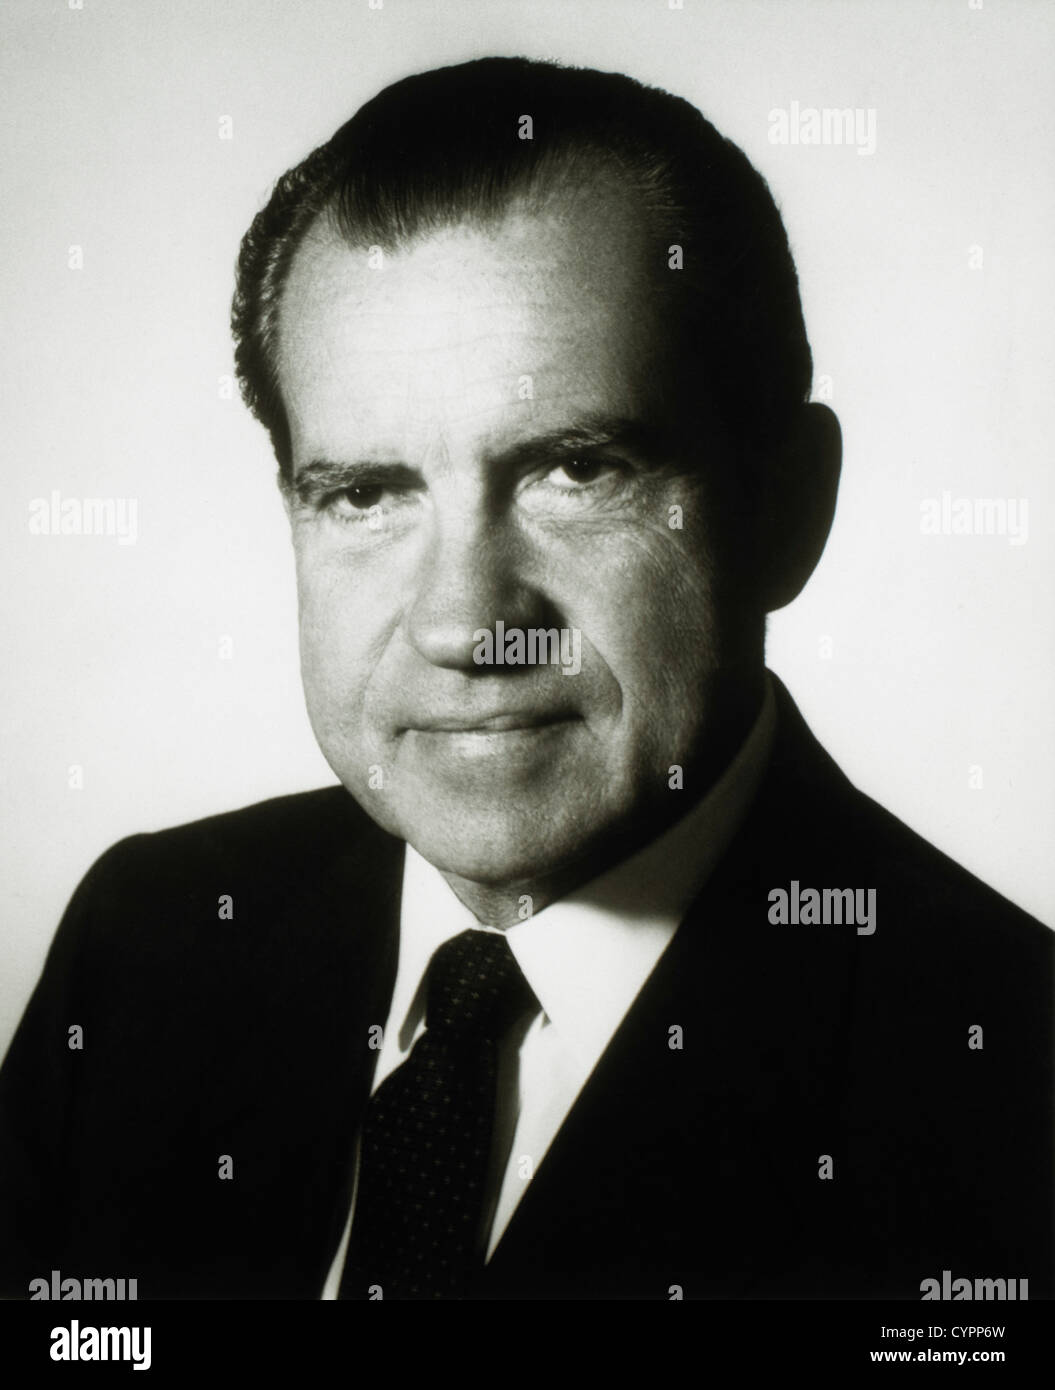 Richard M. Nixon (1913-1994), 37th President of the United States, Portrait - Stock Image